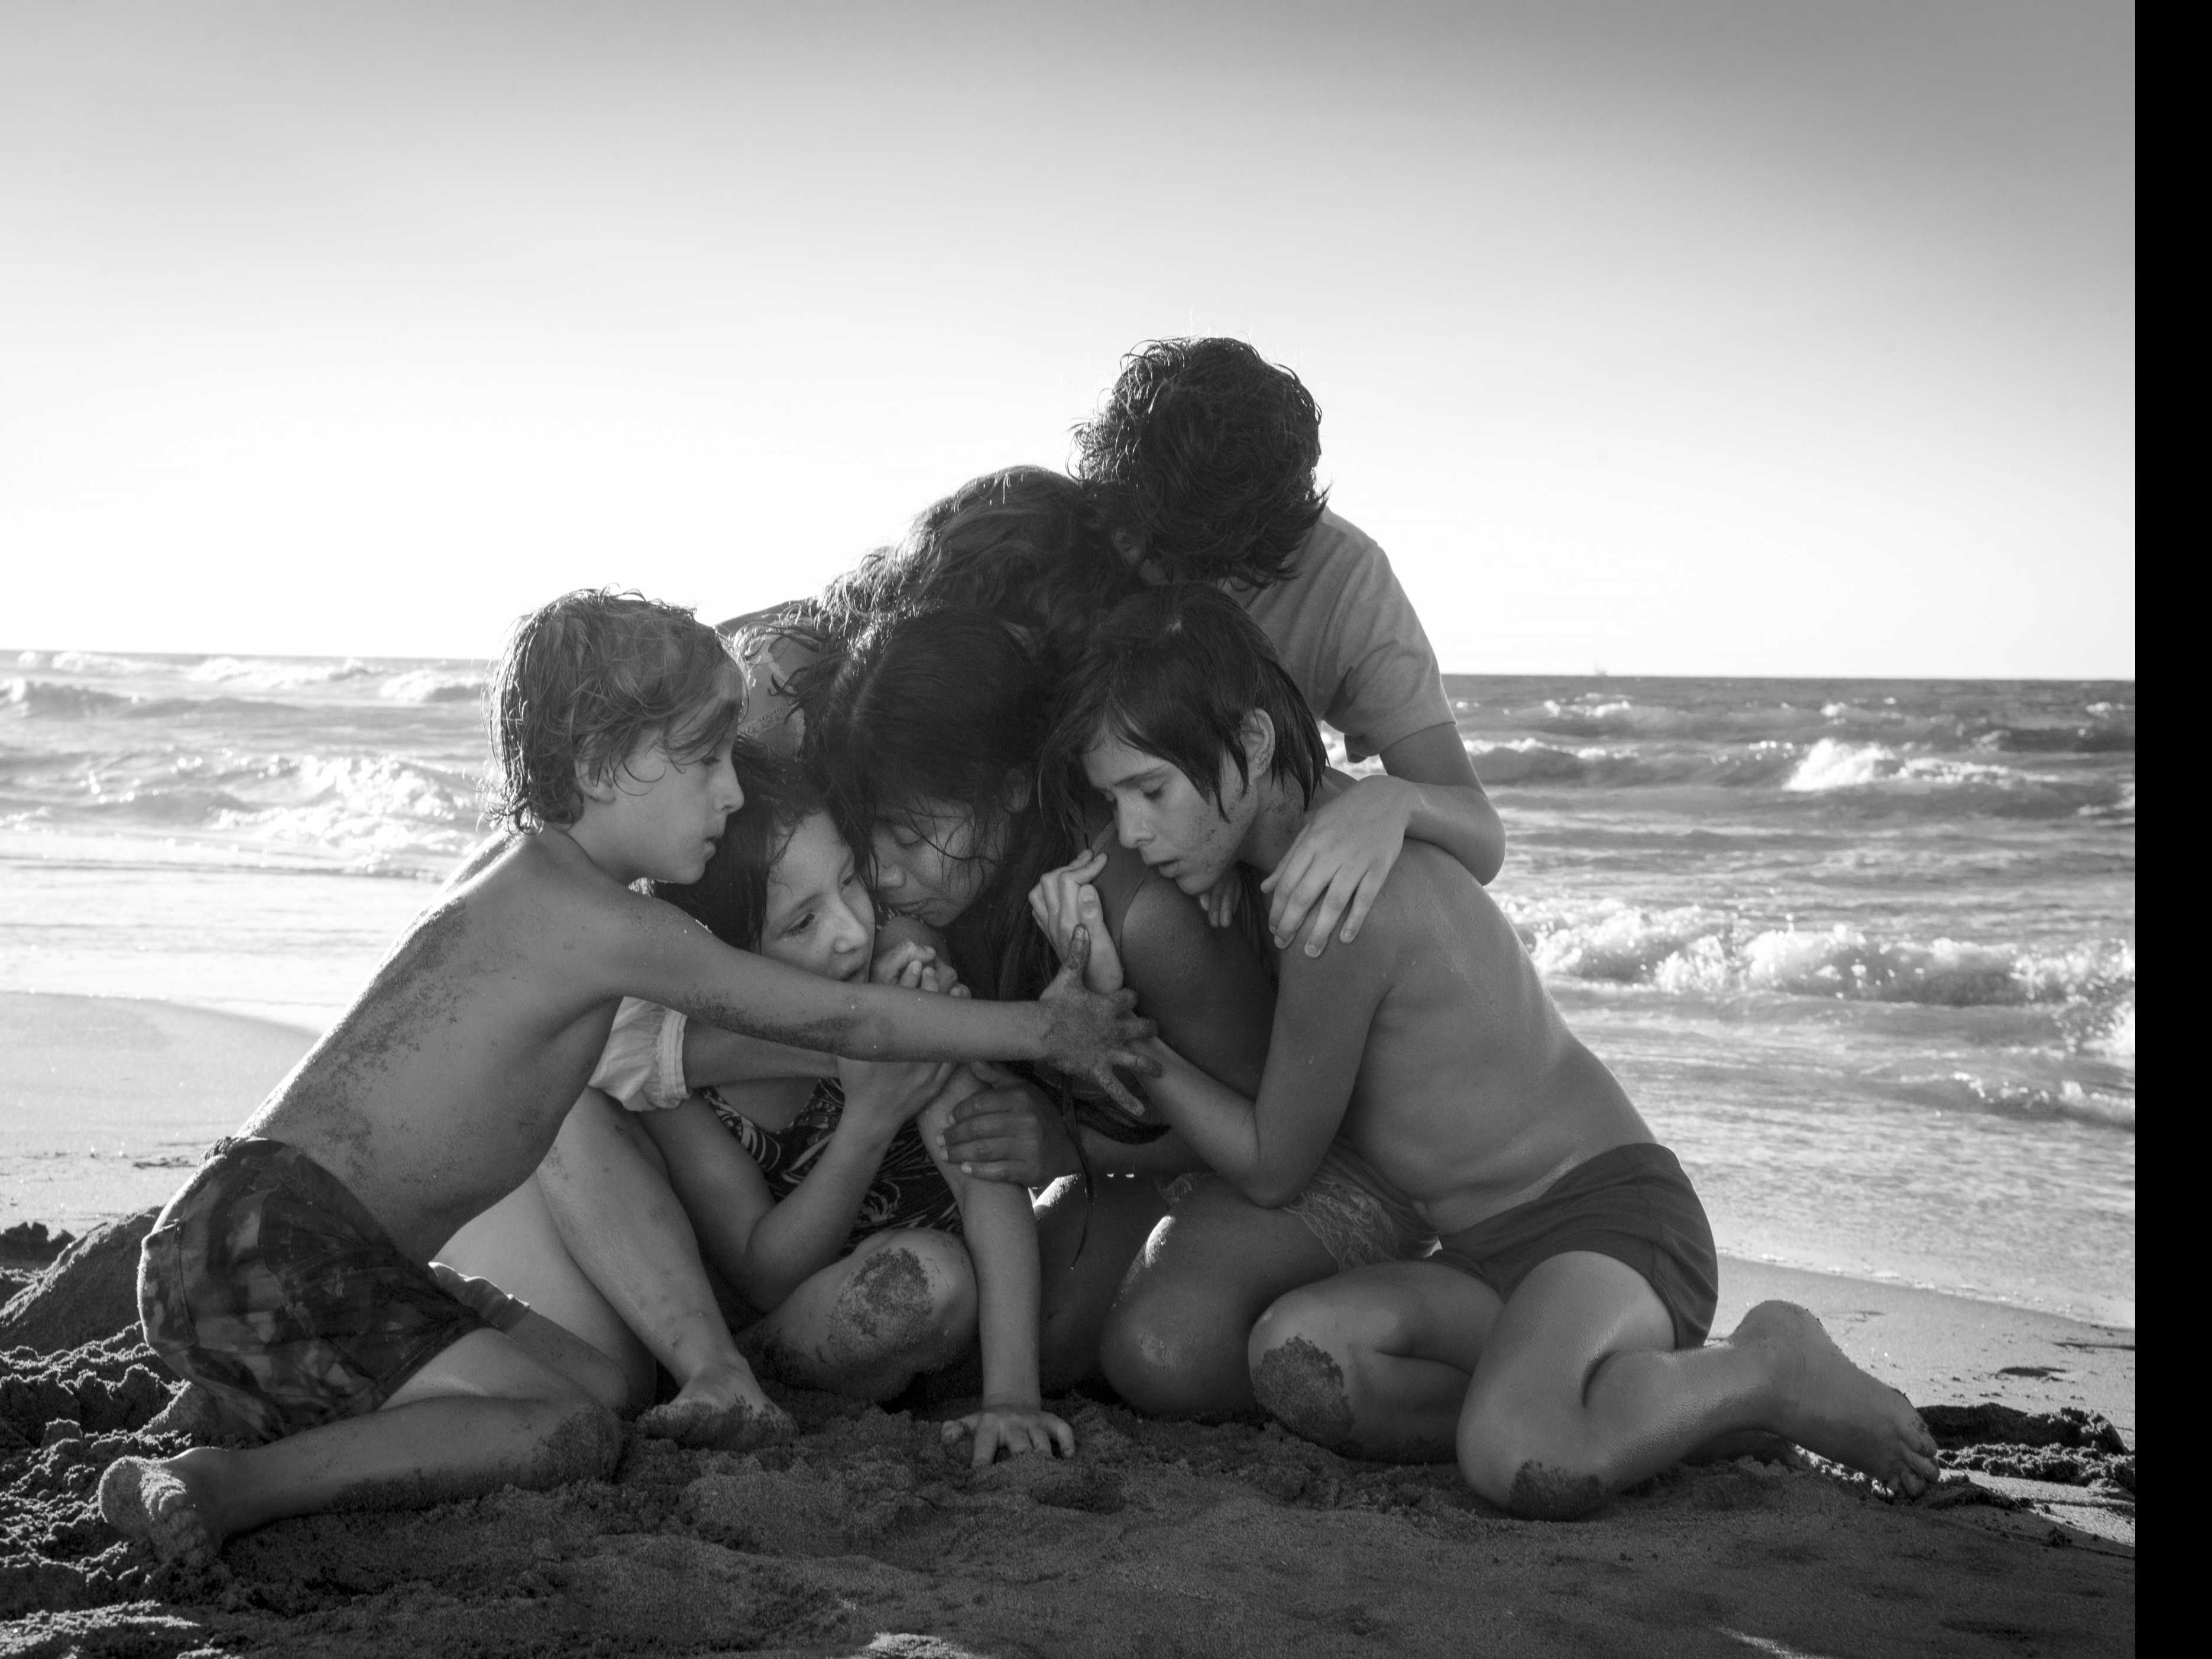 LA Film Critics Name 'Roma' Best Film of the Year